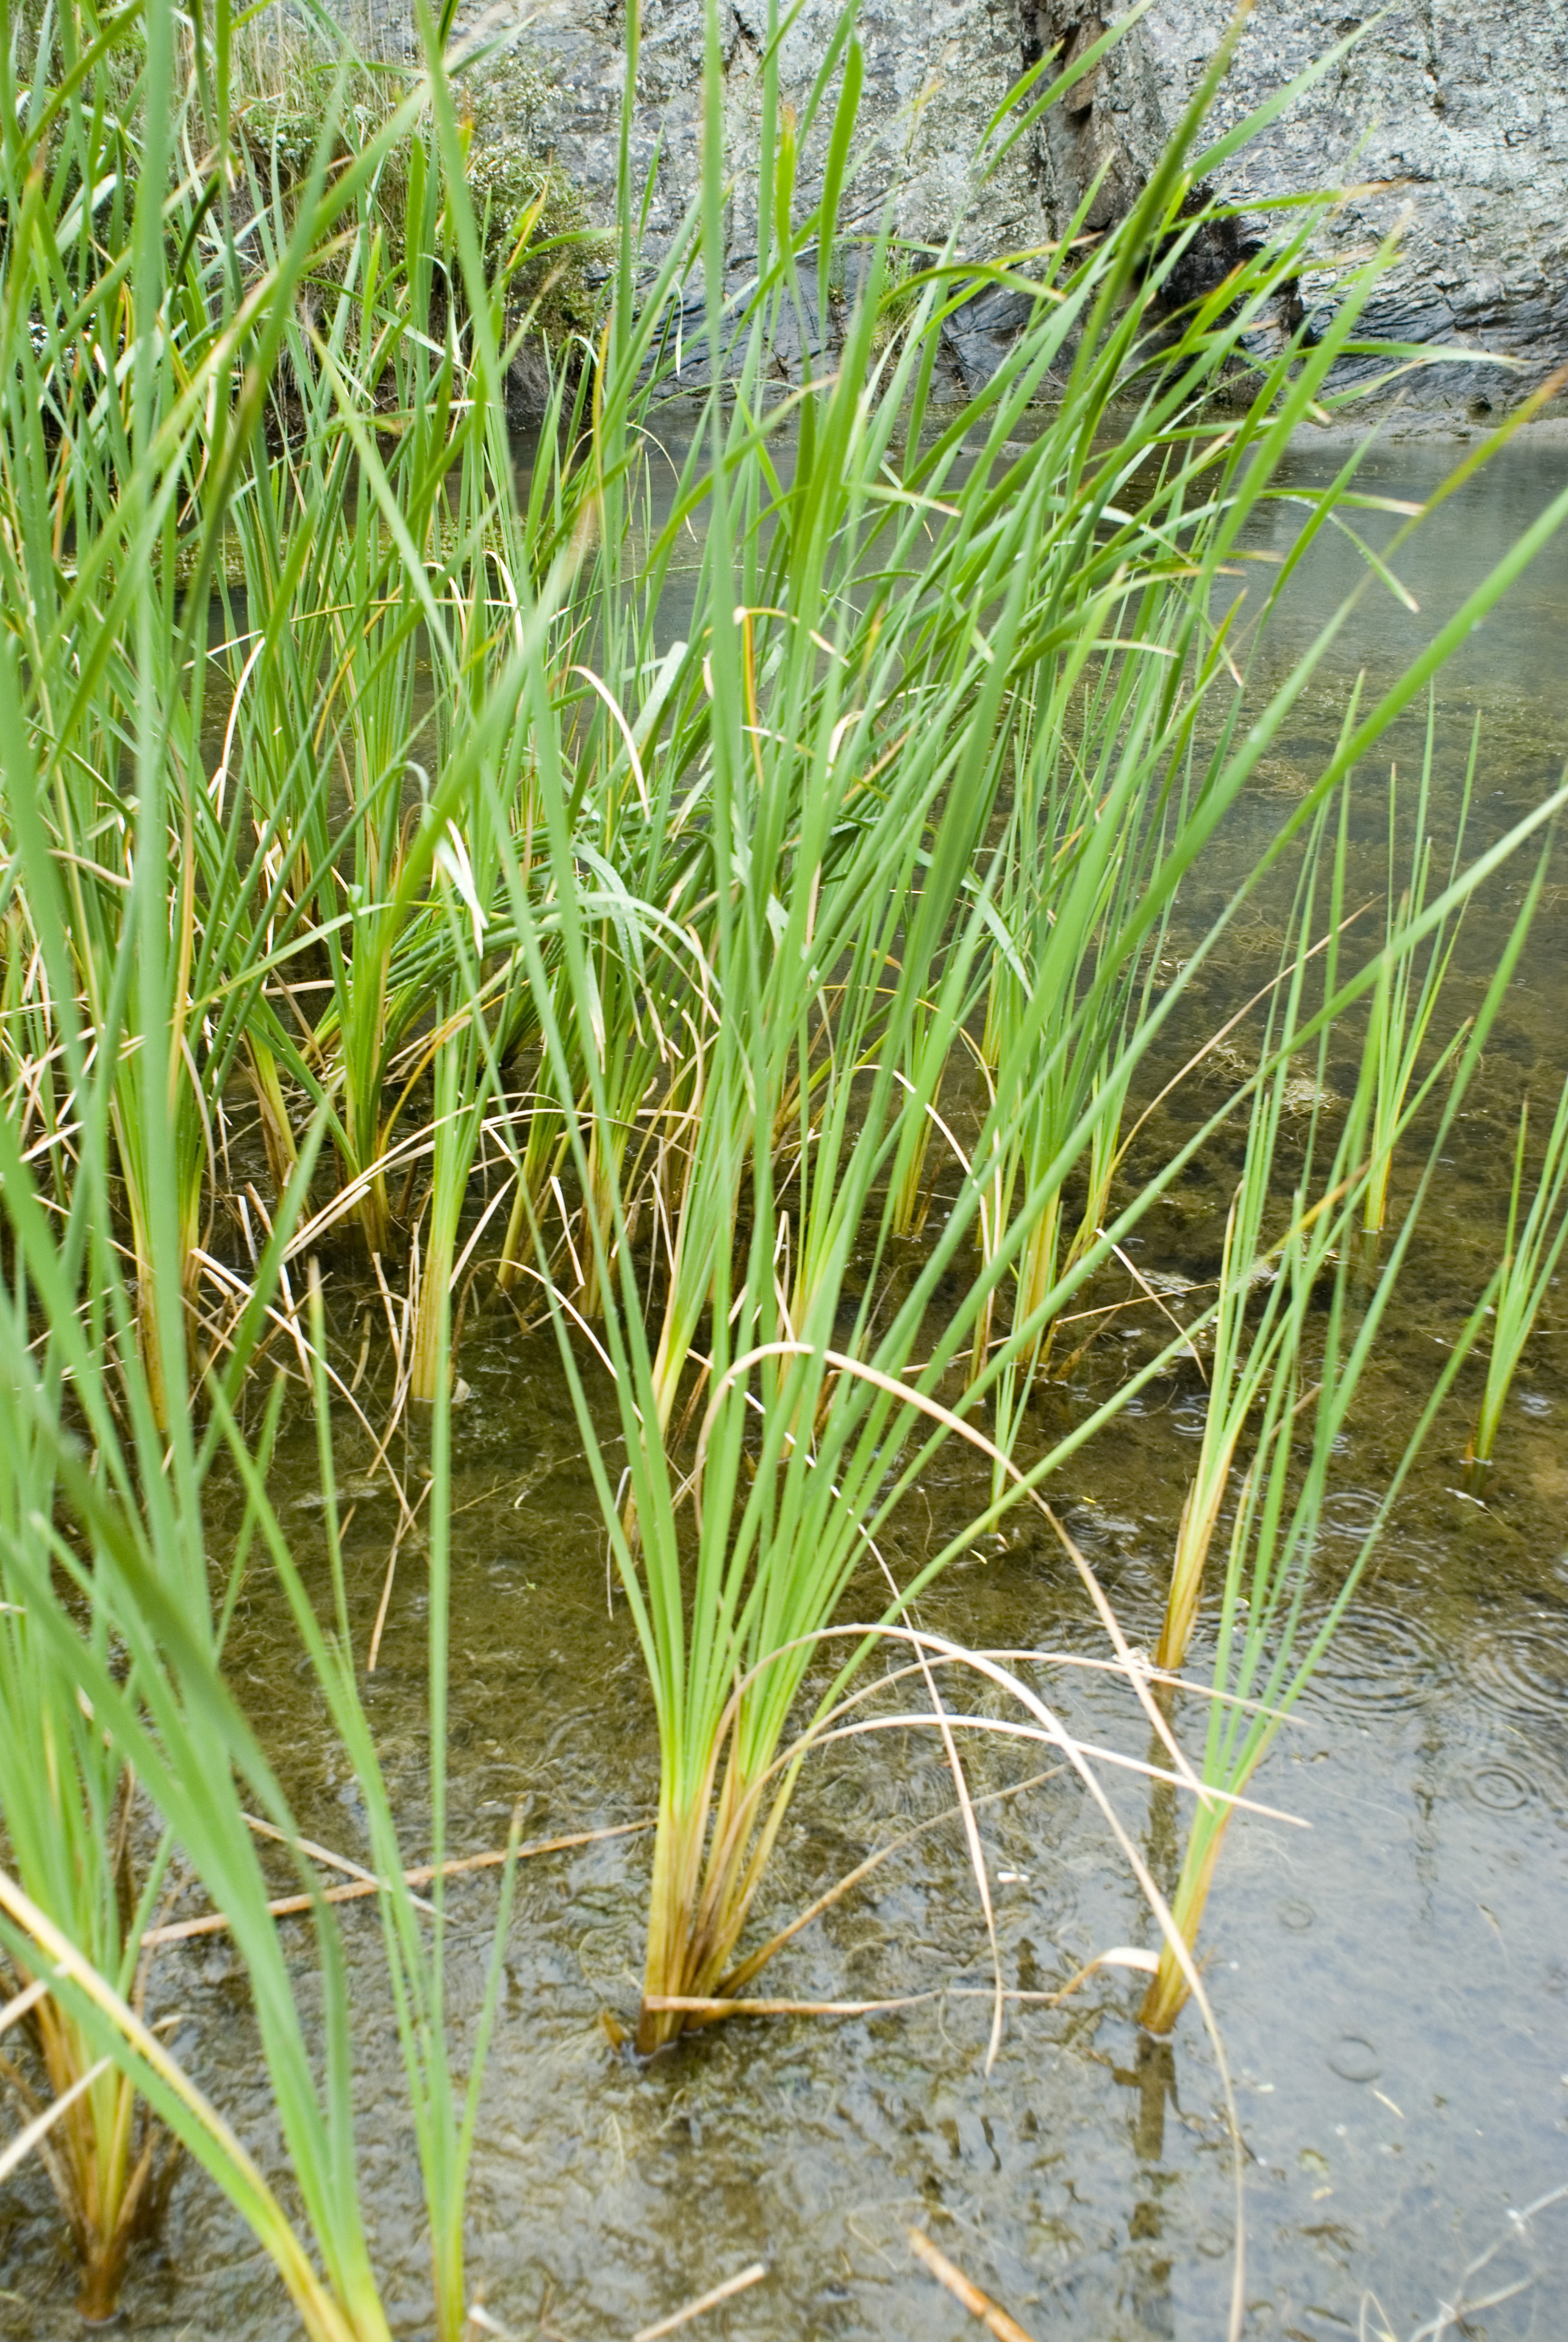 Fresh green clumps of wetland grasses growing in a shallow pool of water in a botanical background